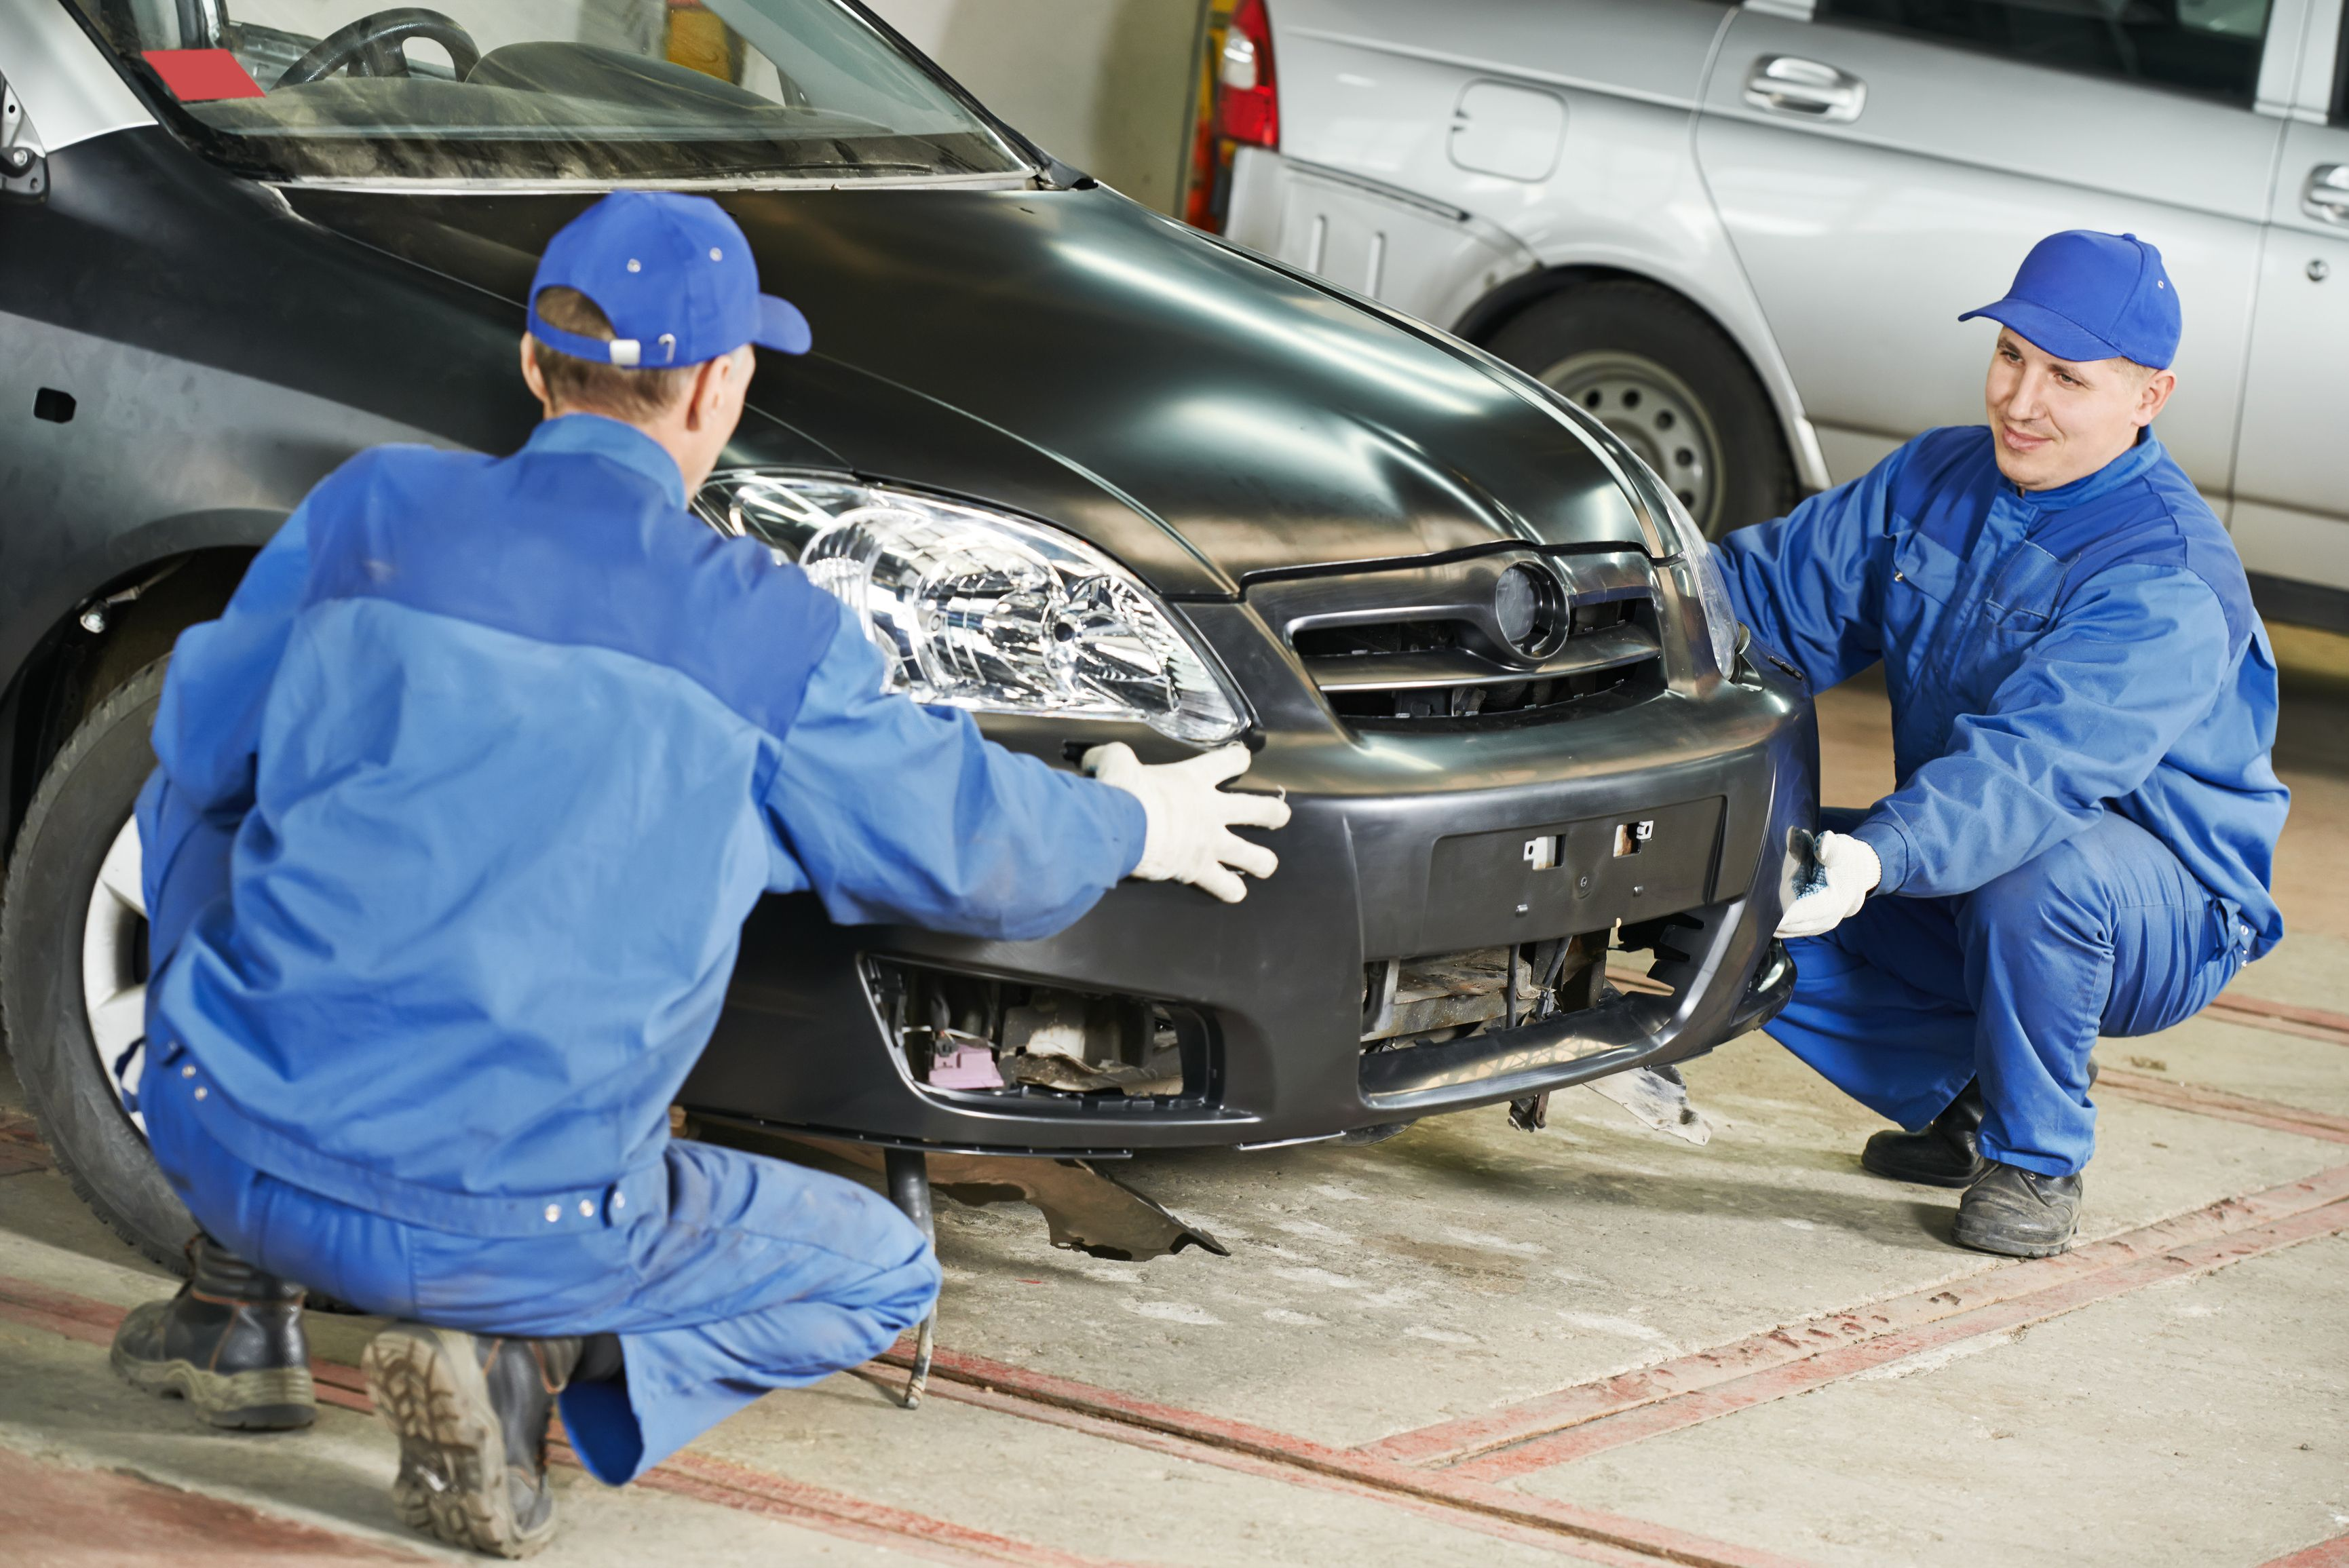 5 Star Auto Truck Repair Offers Expert Auto Repair From Start